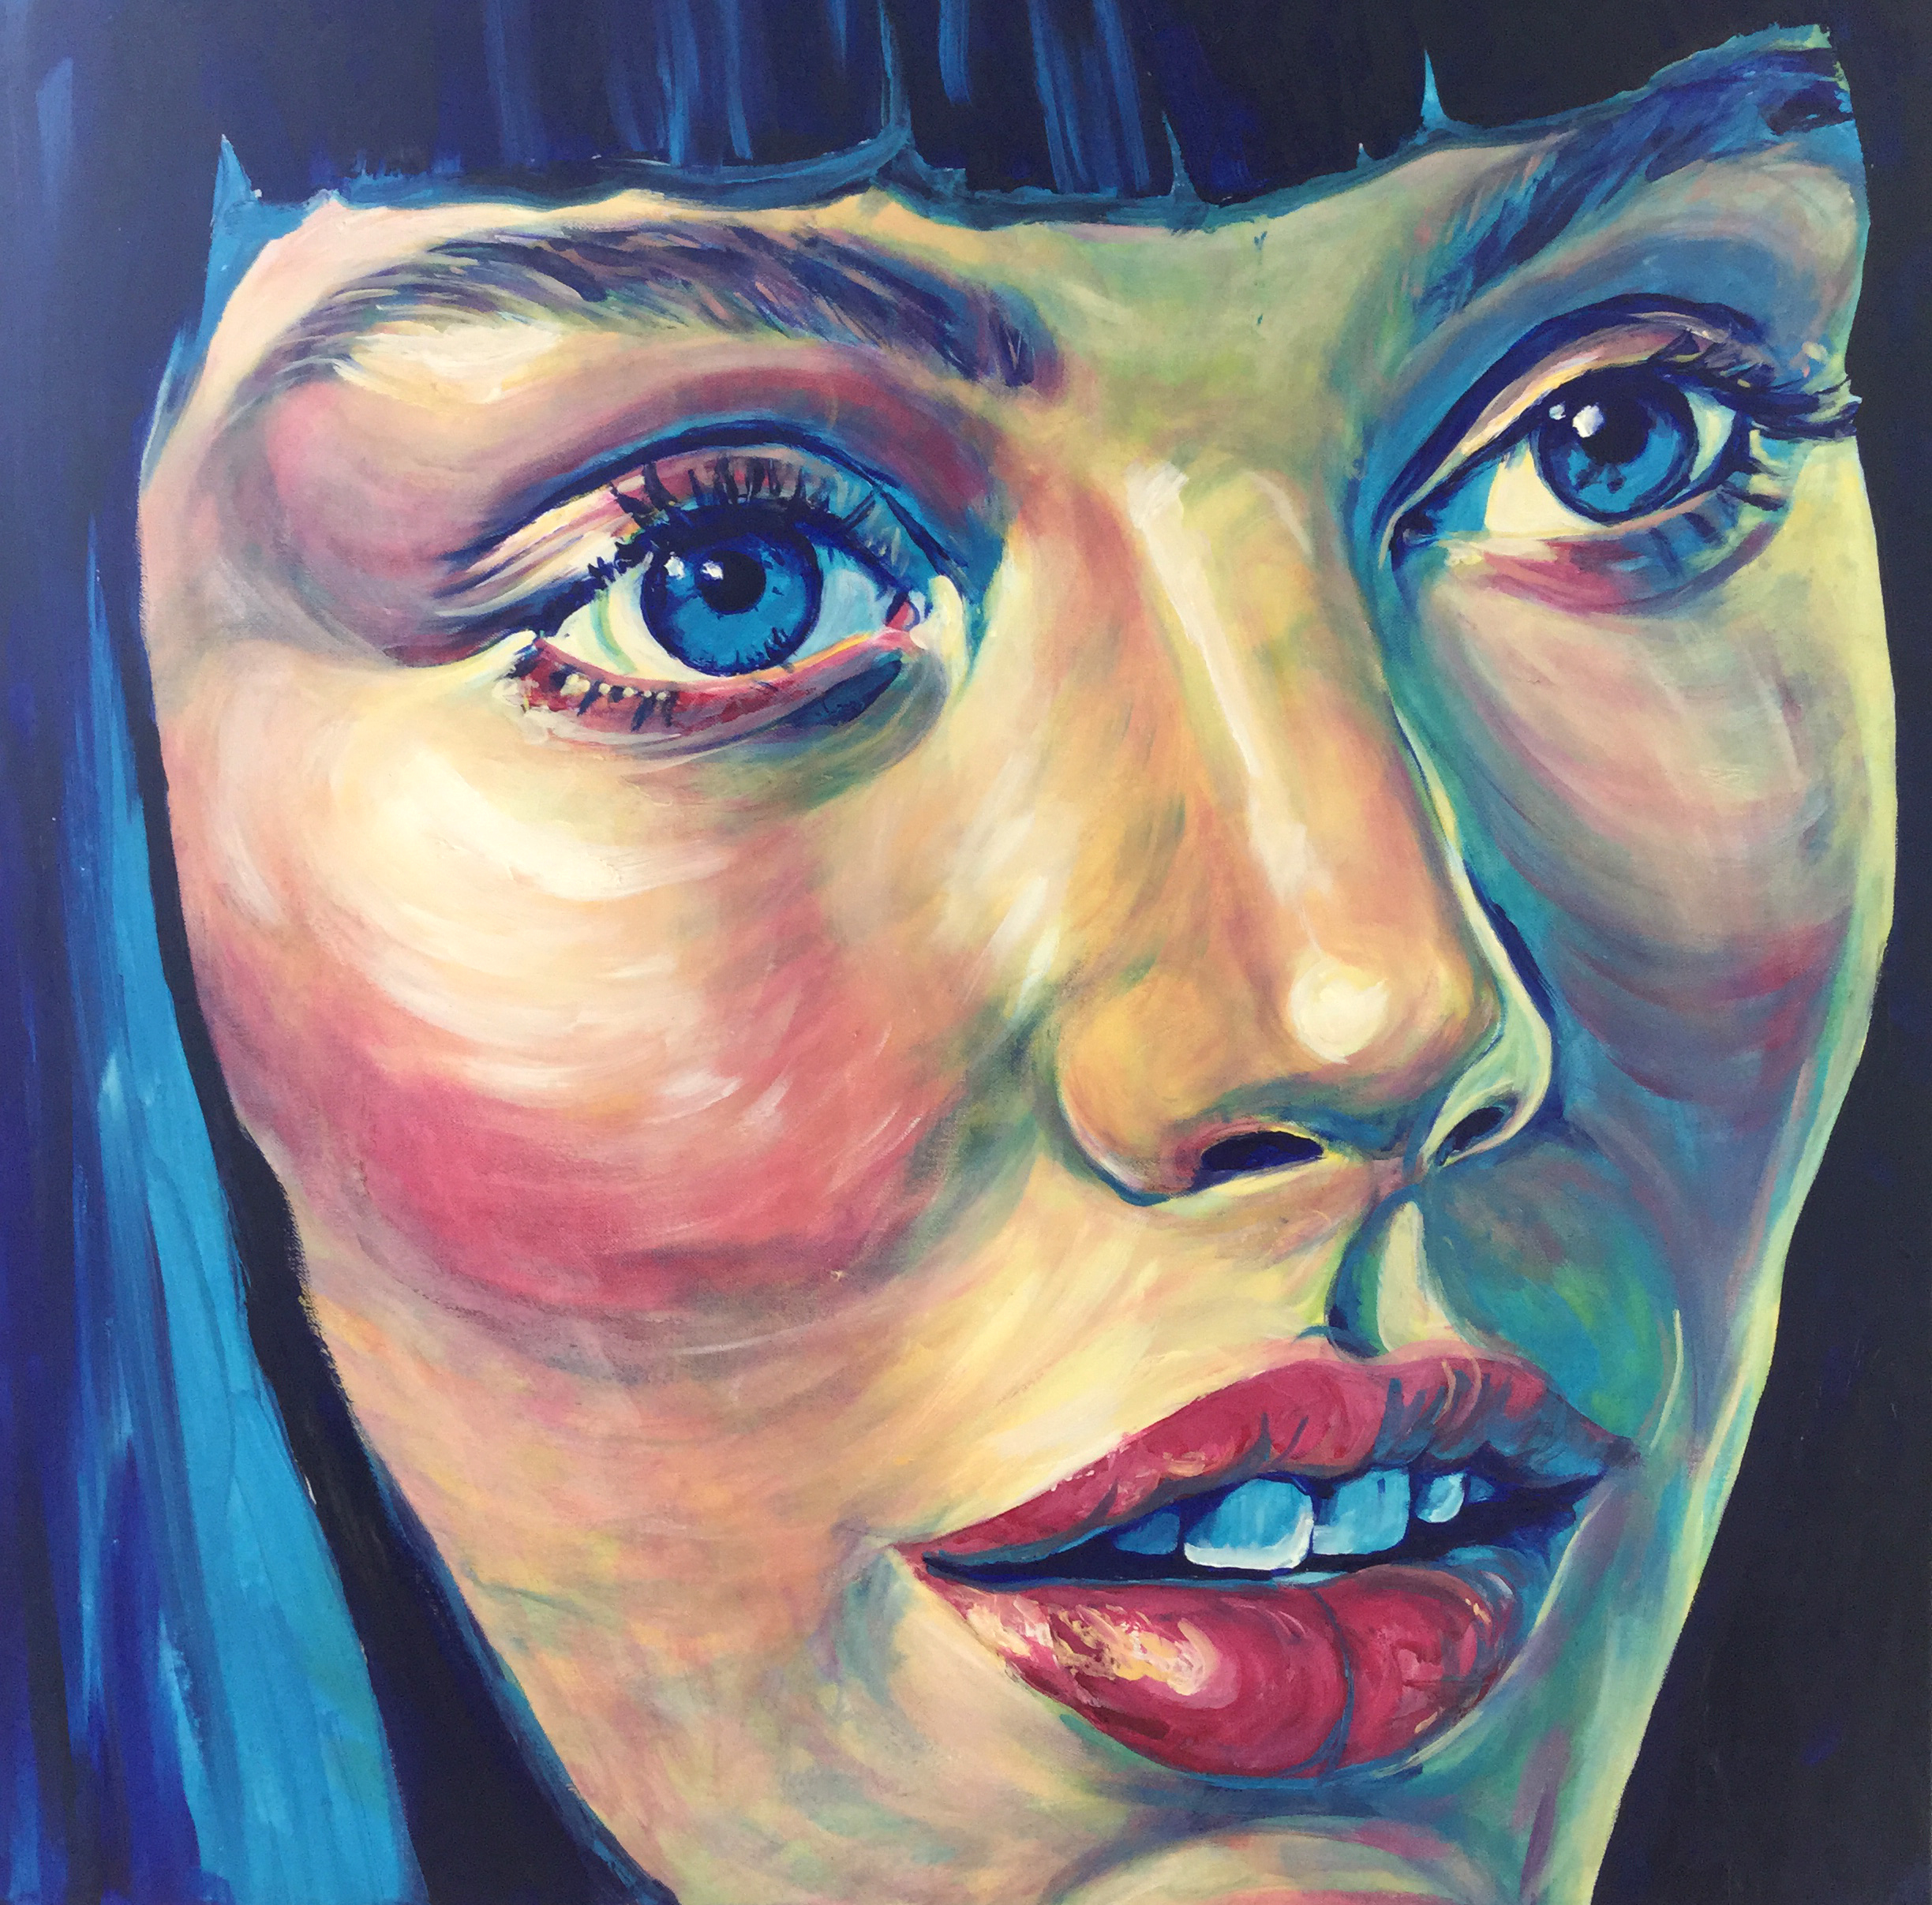 """ BANGS""  60 x 60 cm   - Oil on Canvas  *SOLD"